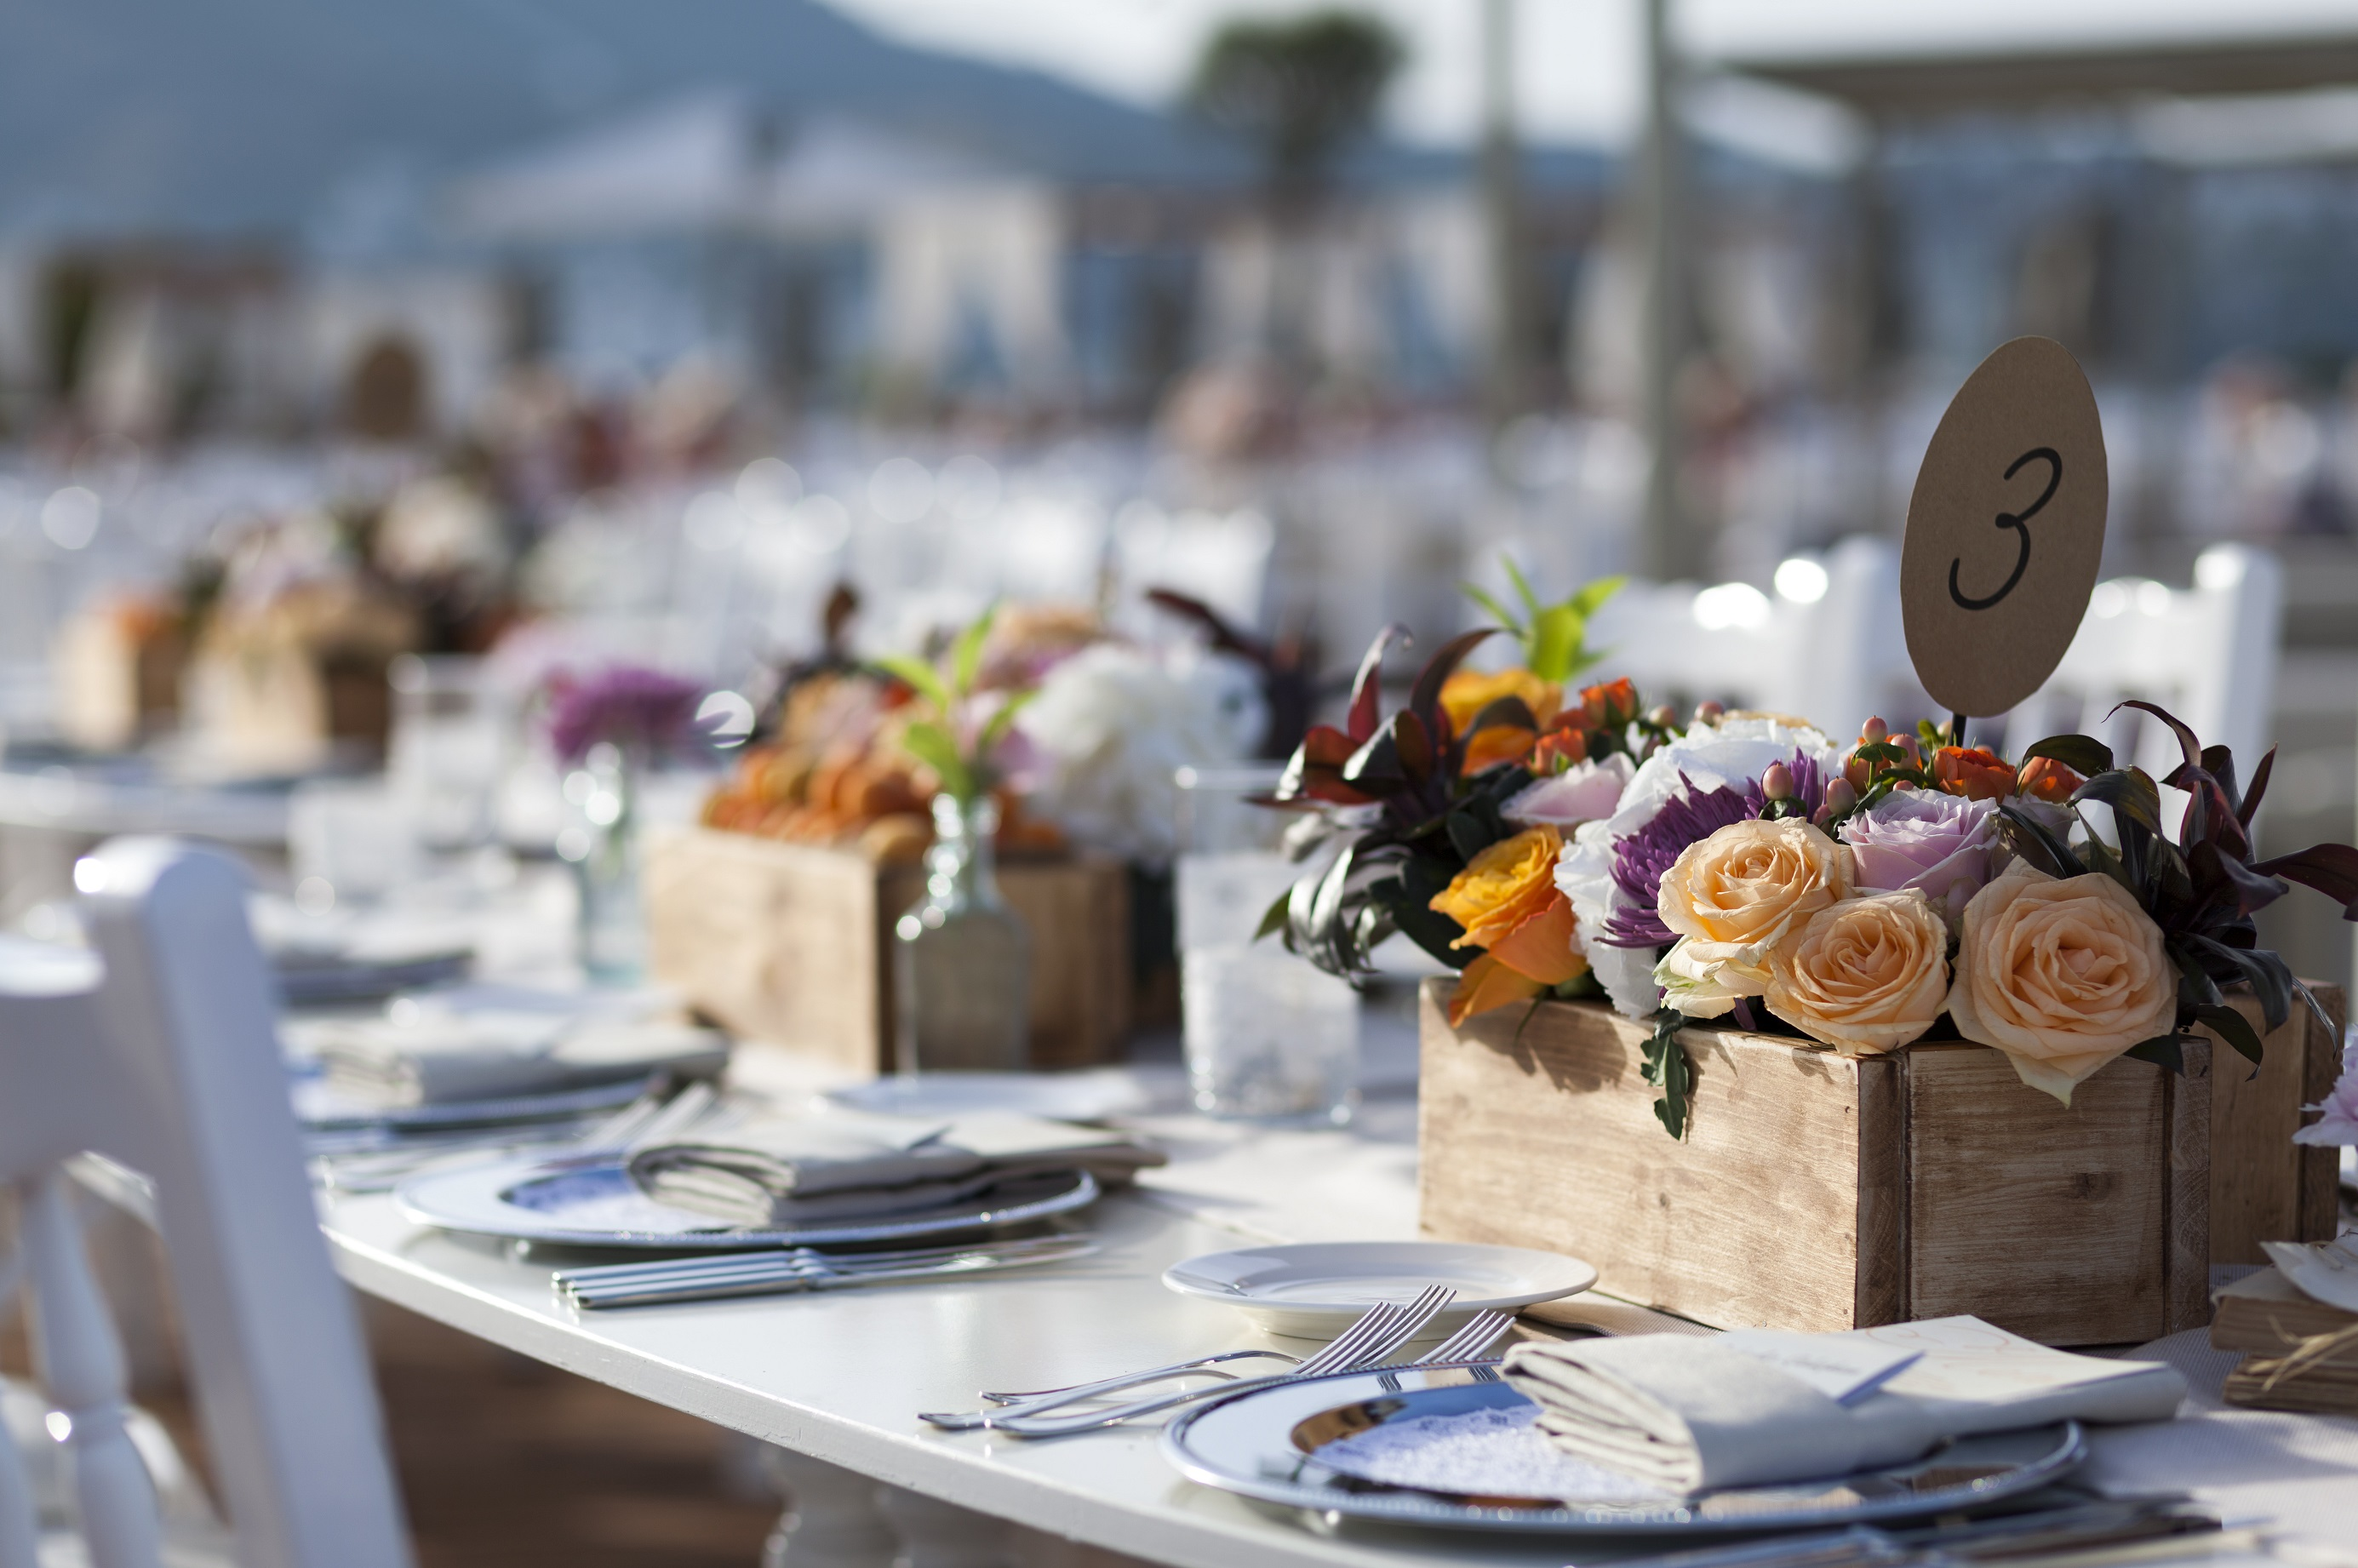 5 wedding reception seating tips you need to follow